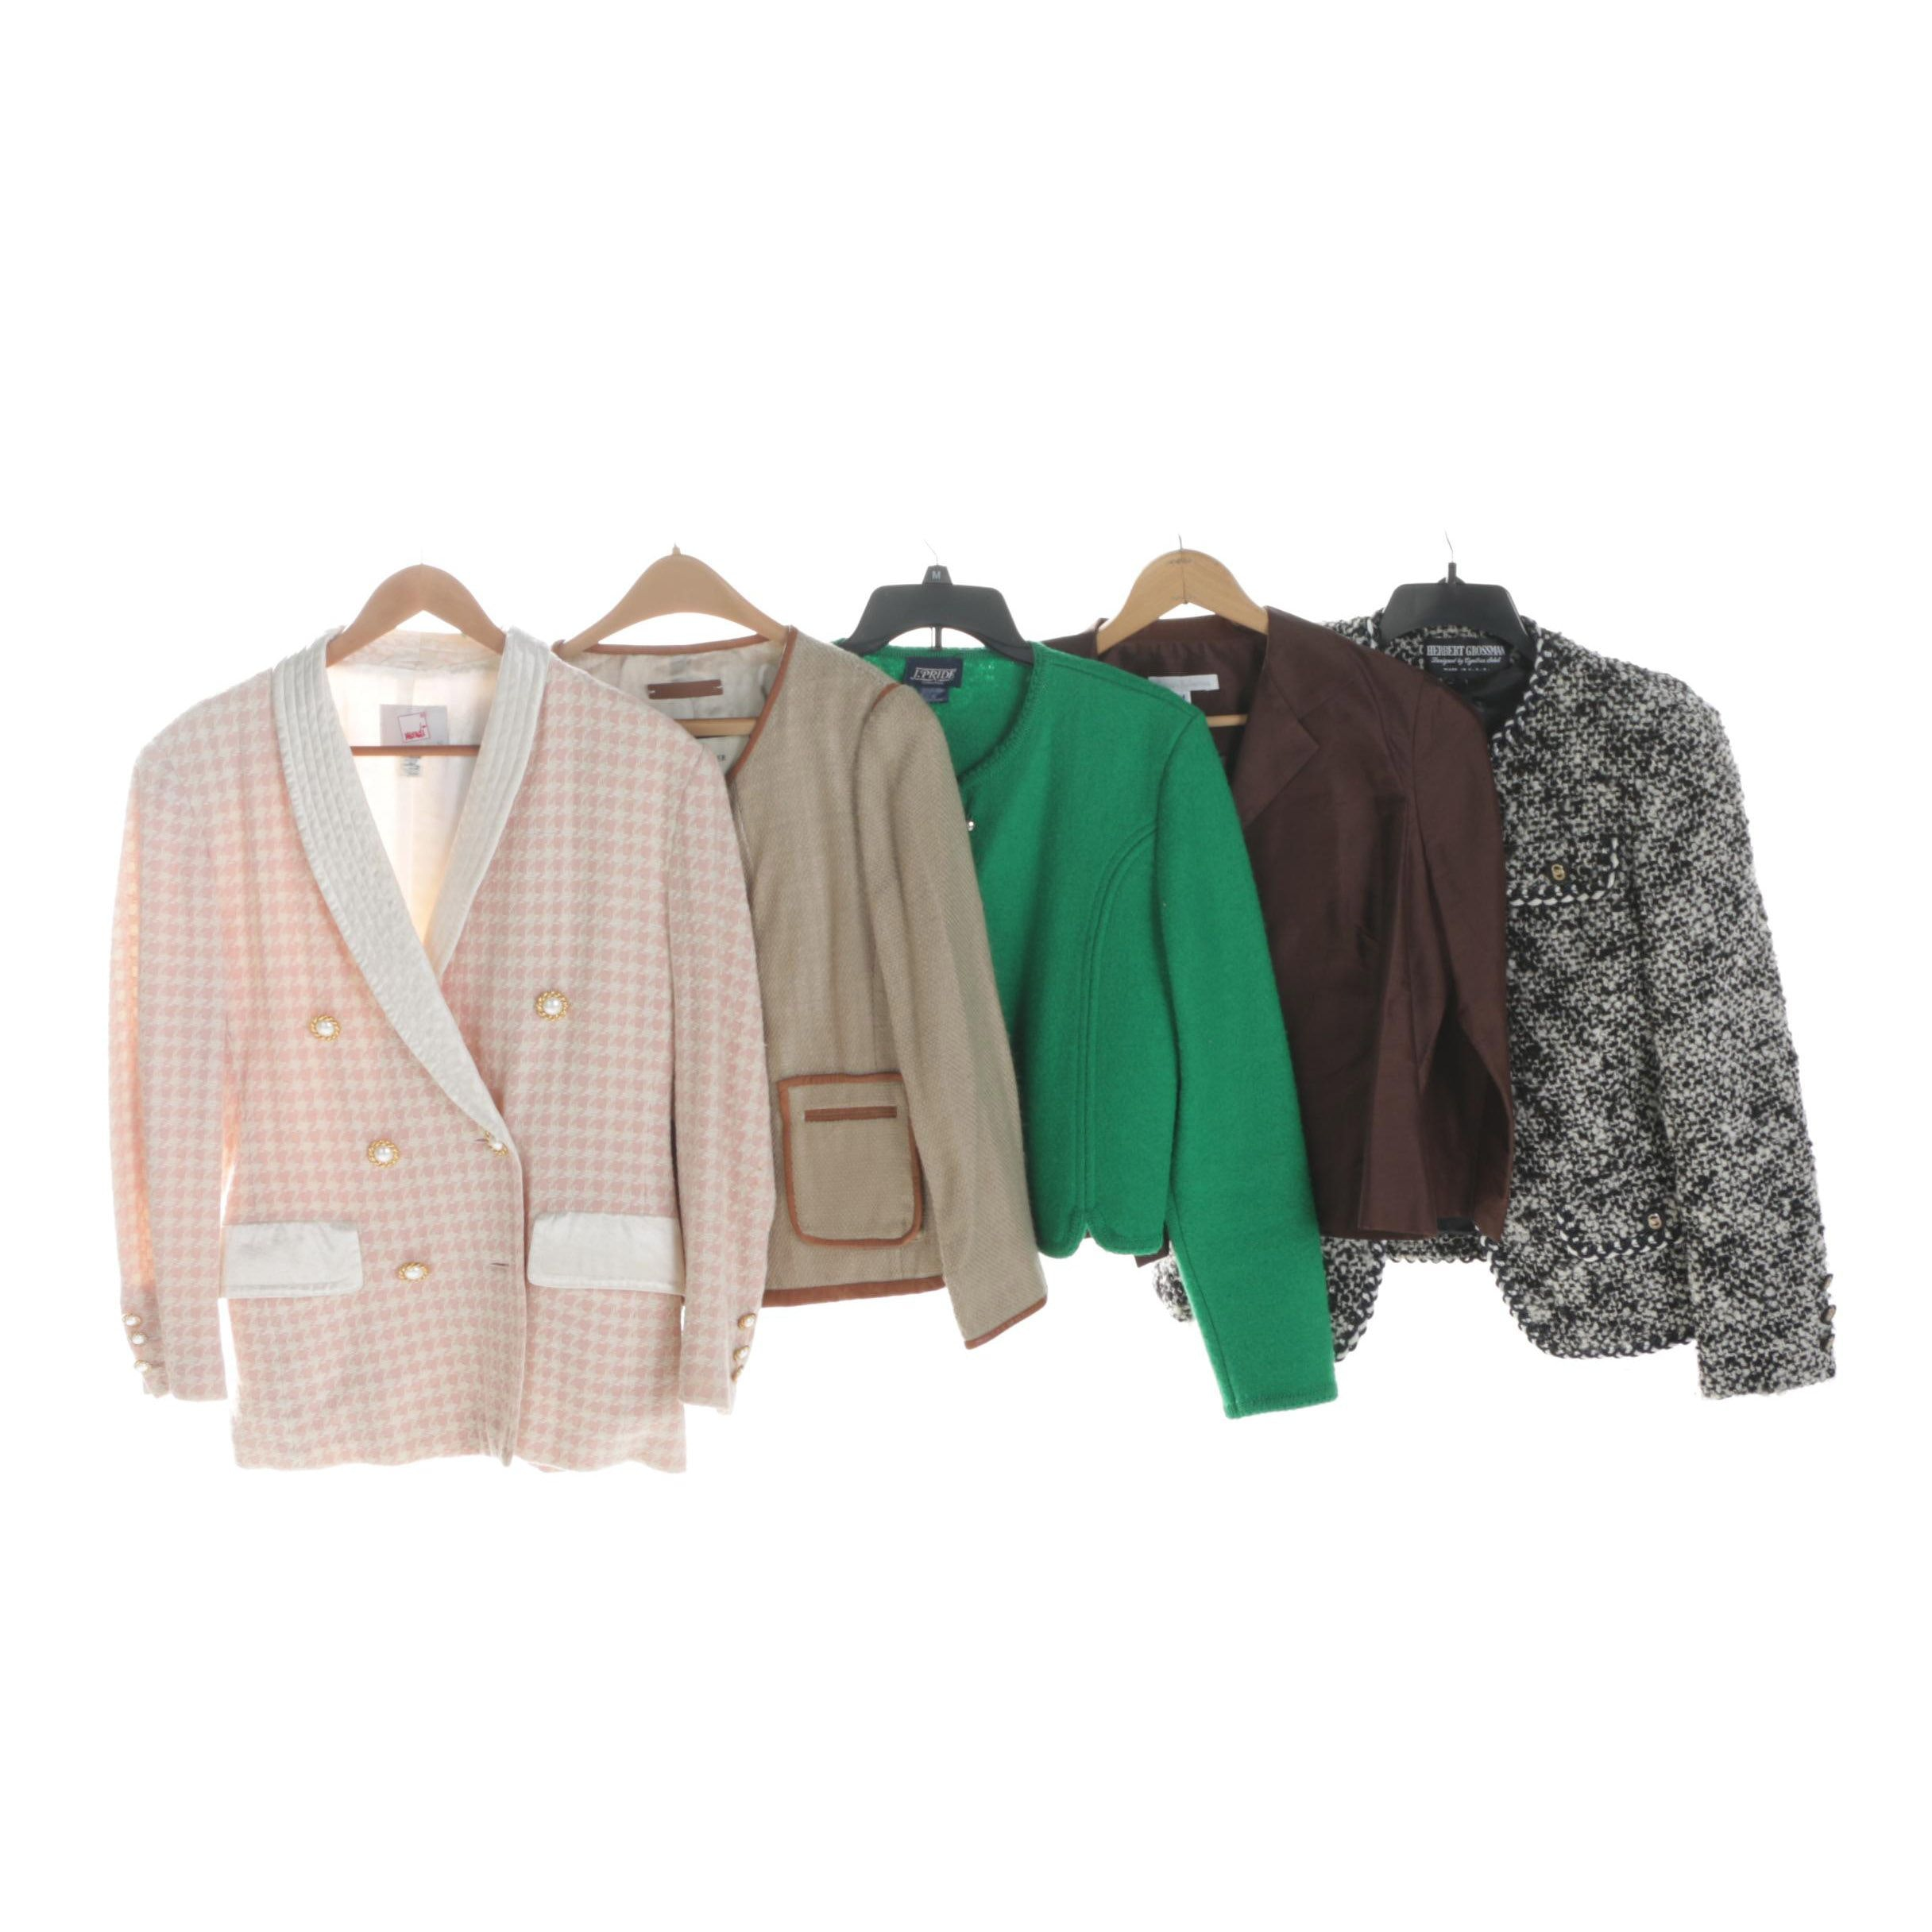 Women's Blazers Including Malene Birger, Connie Roberson, Herbert Grossman